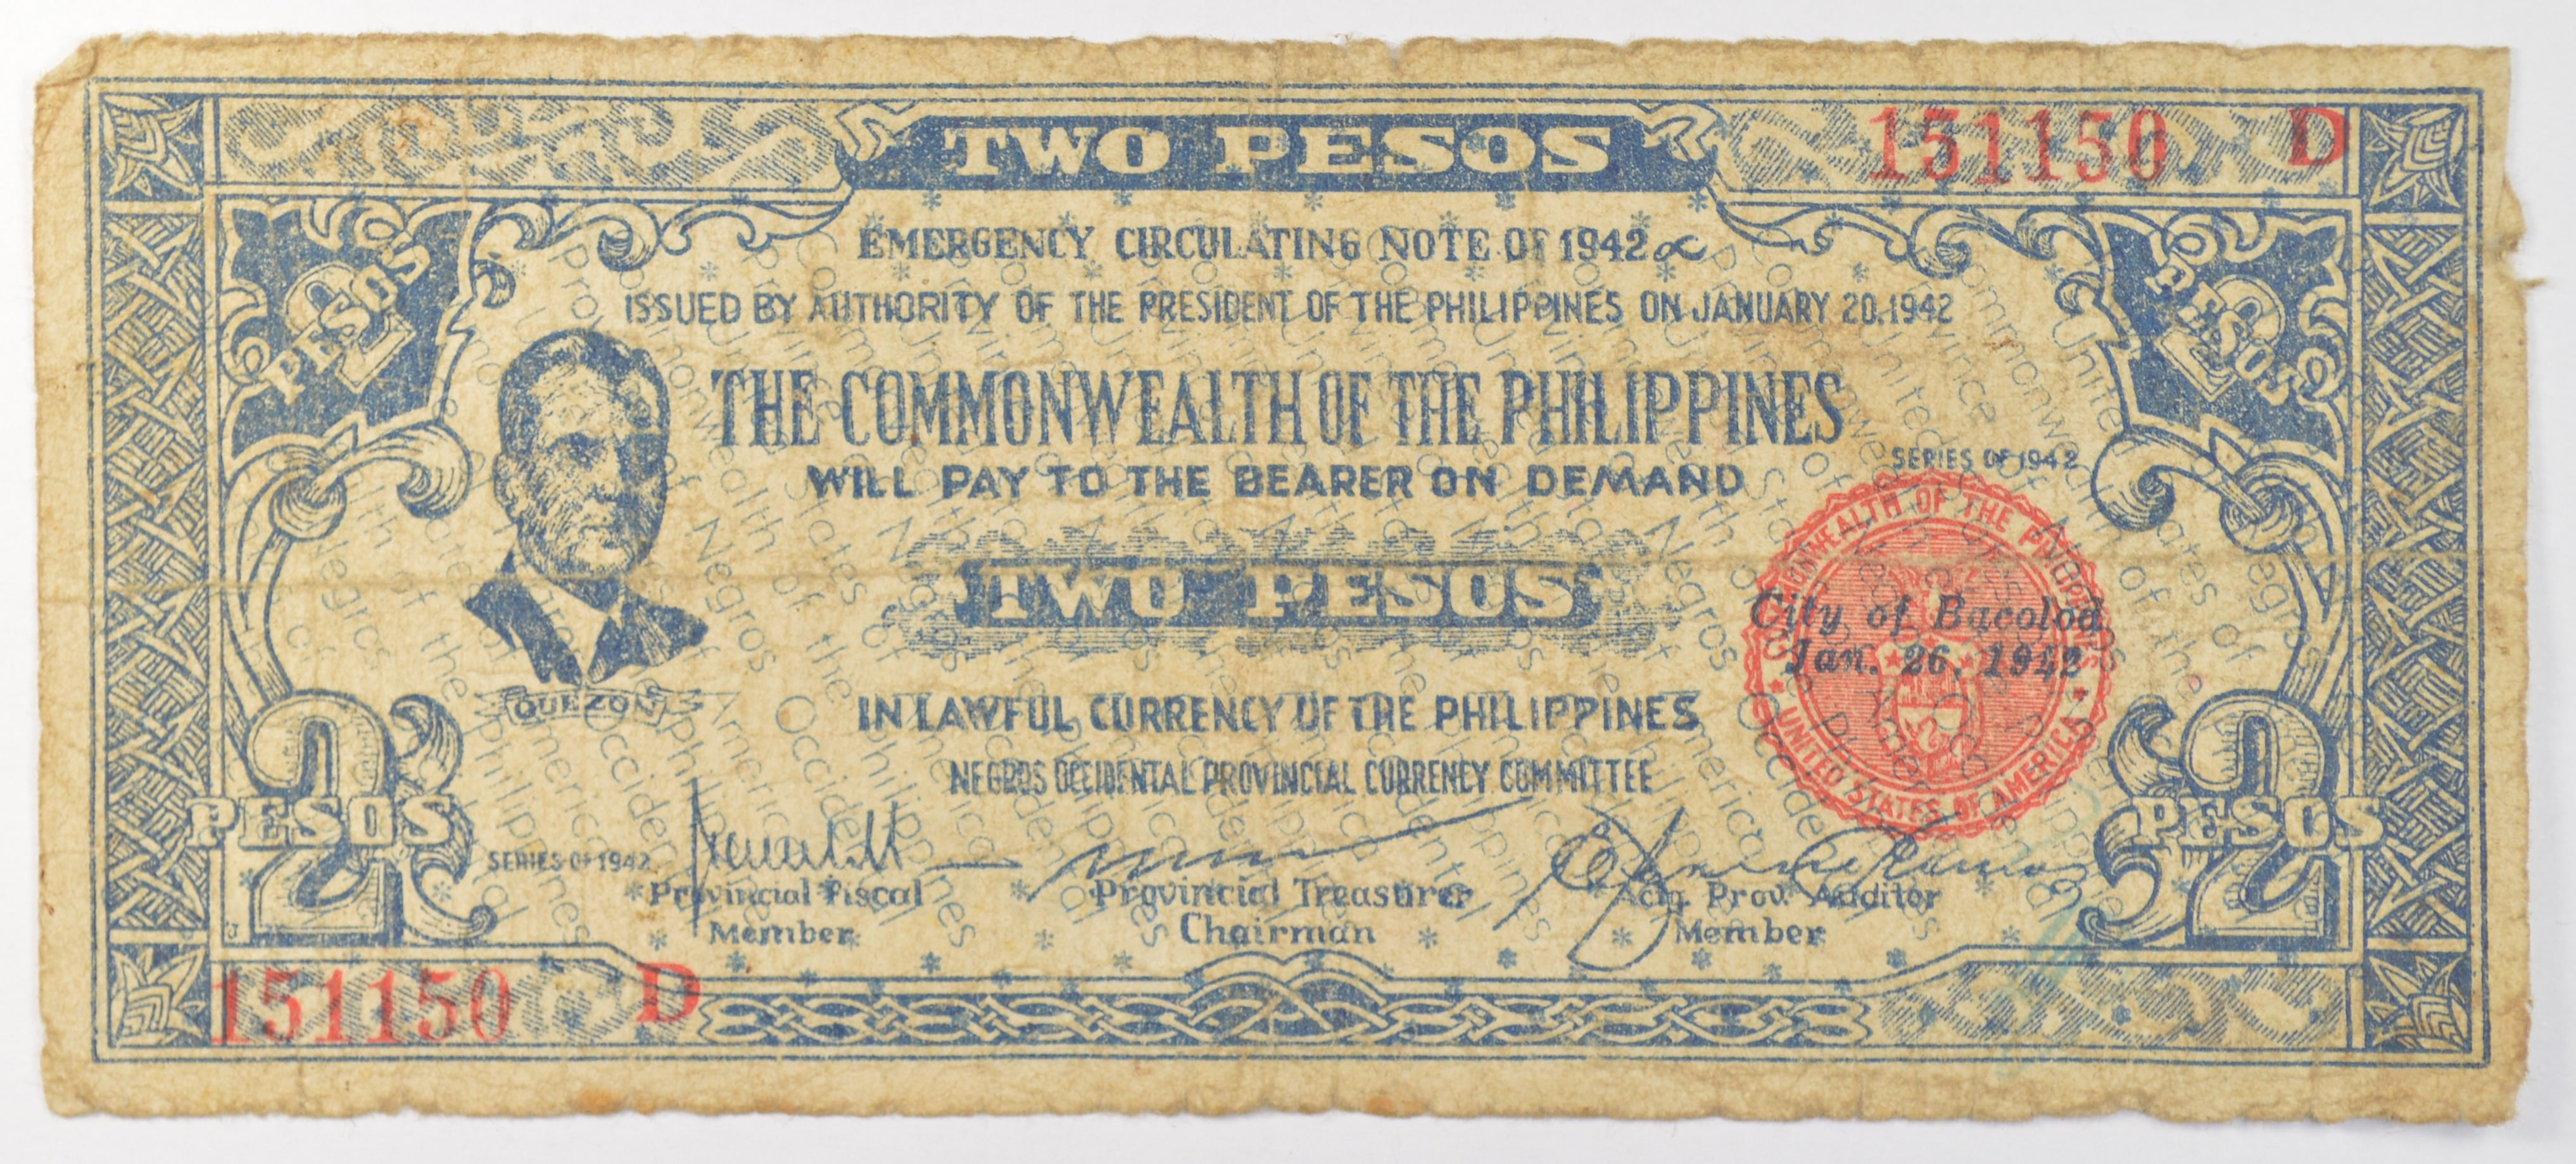 Rare WWII Era - Philippines - Currency - United States